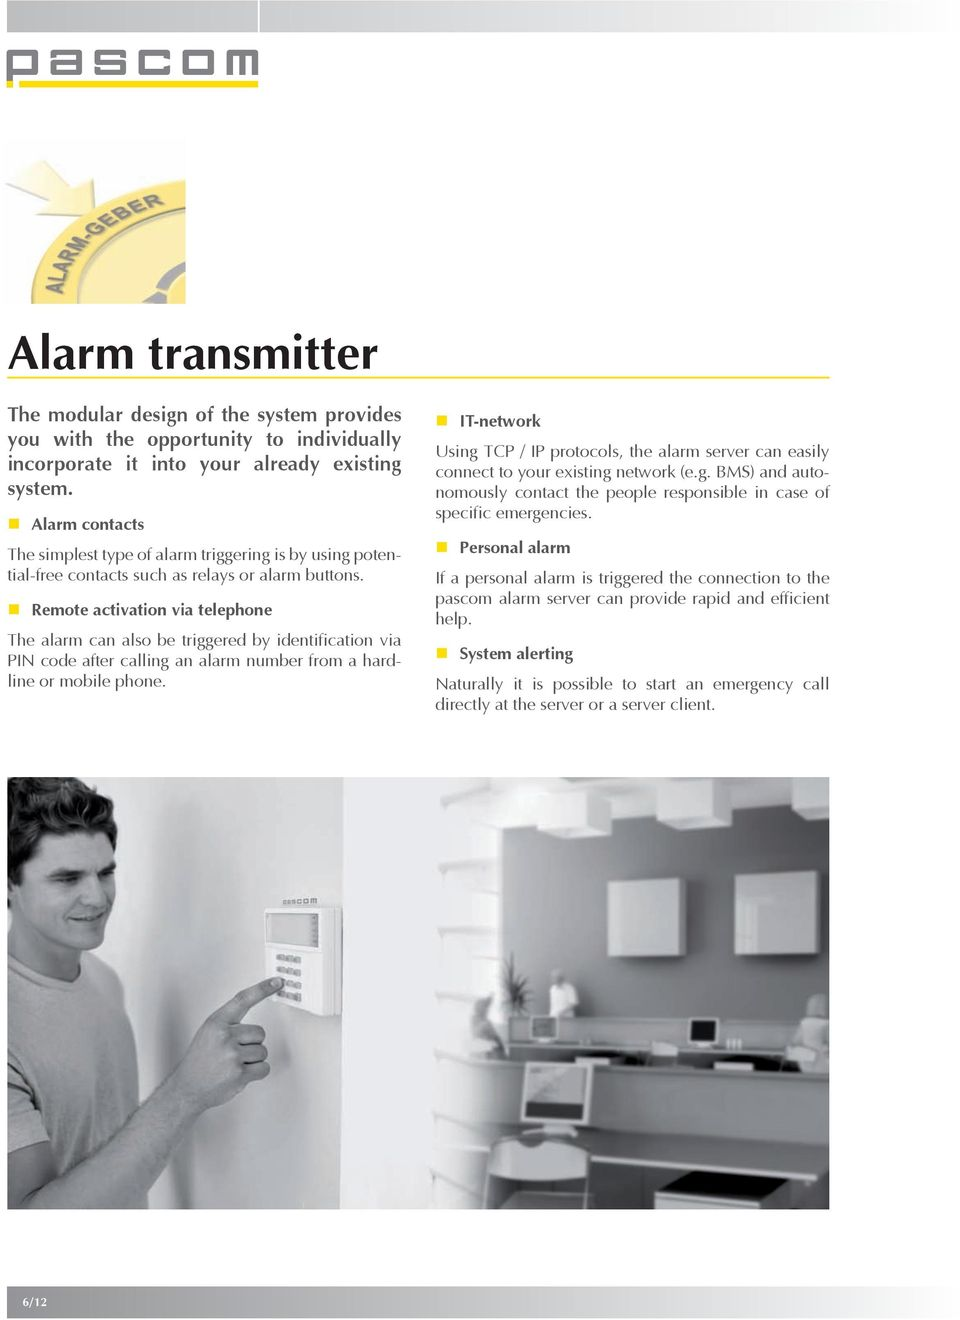 Remote activation via telephone The alarm can also be triggered by identification via PIN code after calling an alarm number from a hardline or mobile phone.